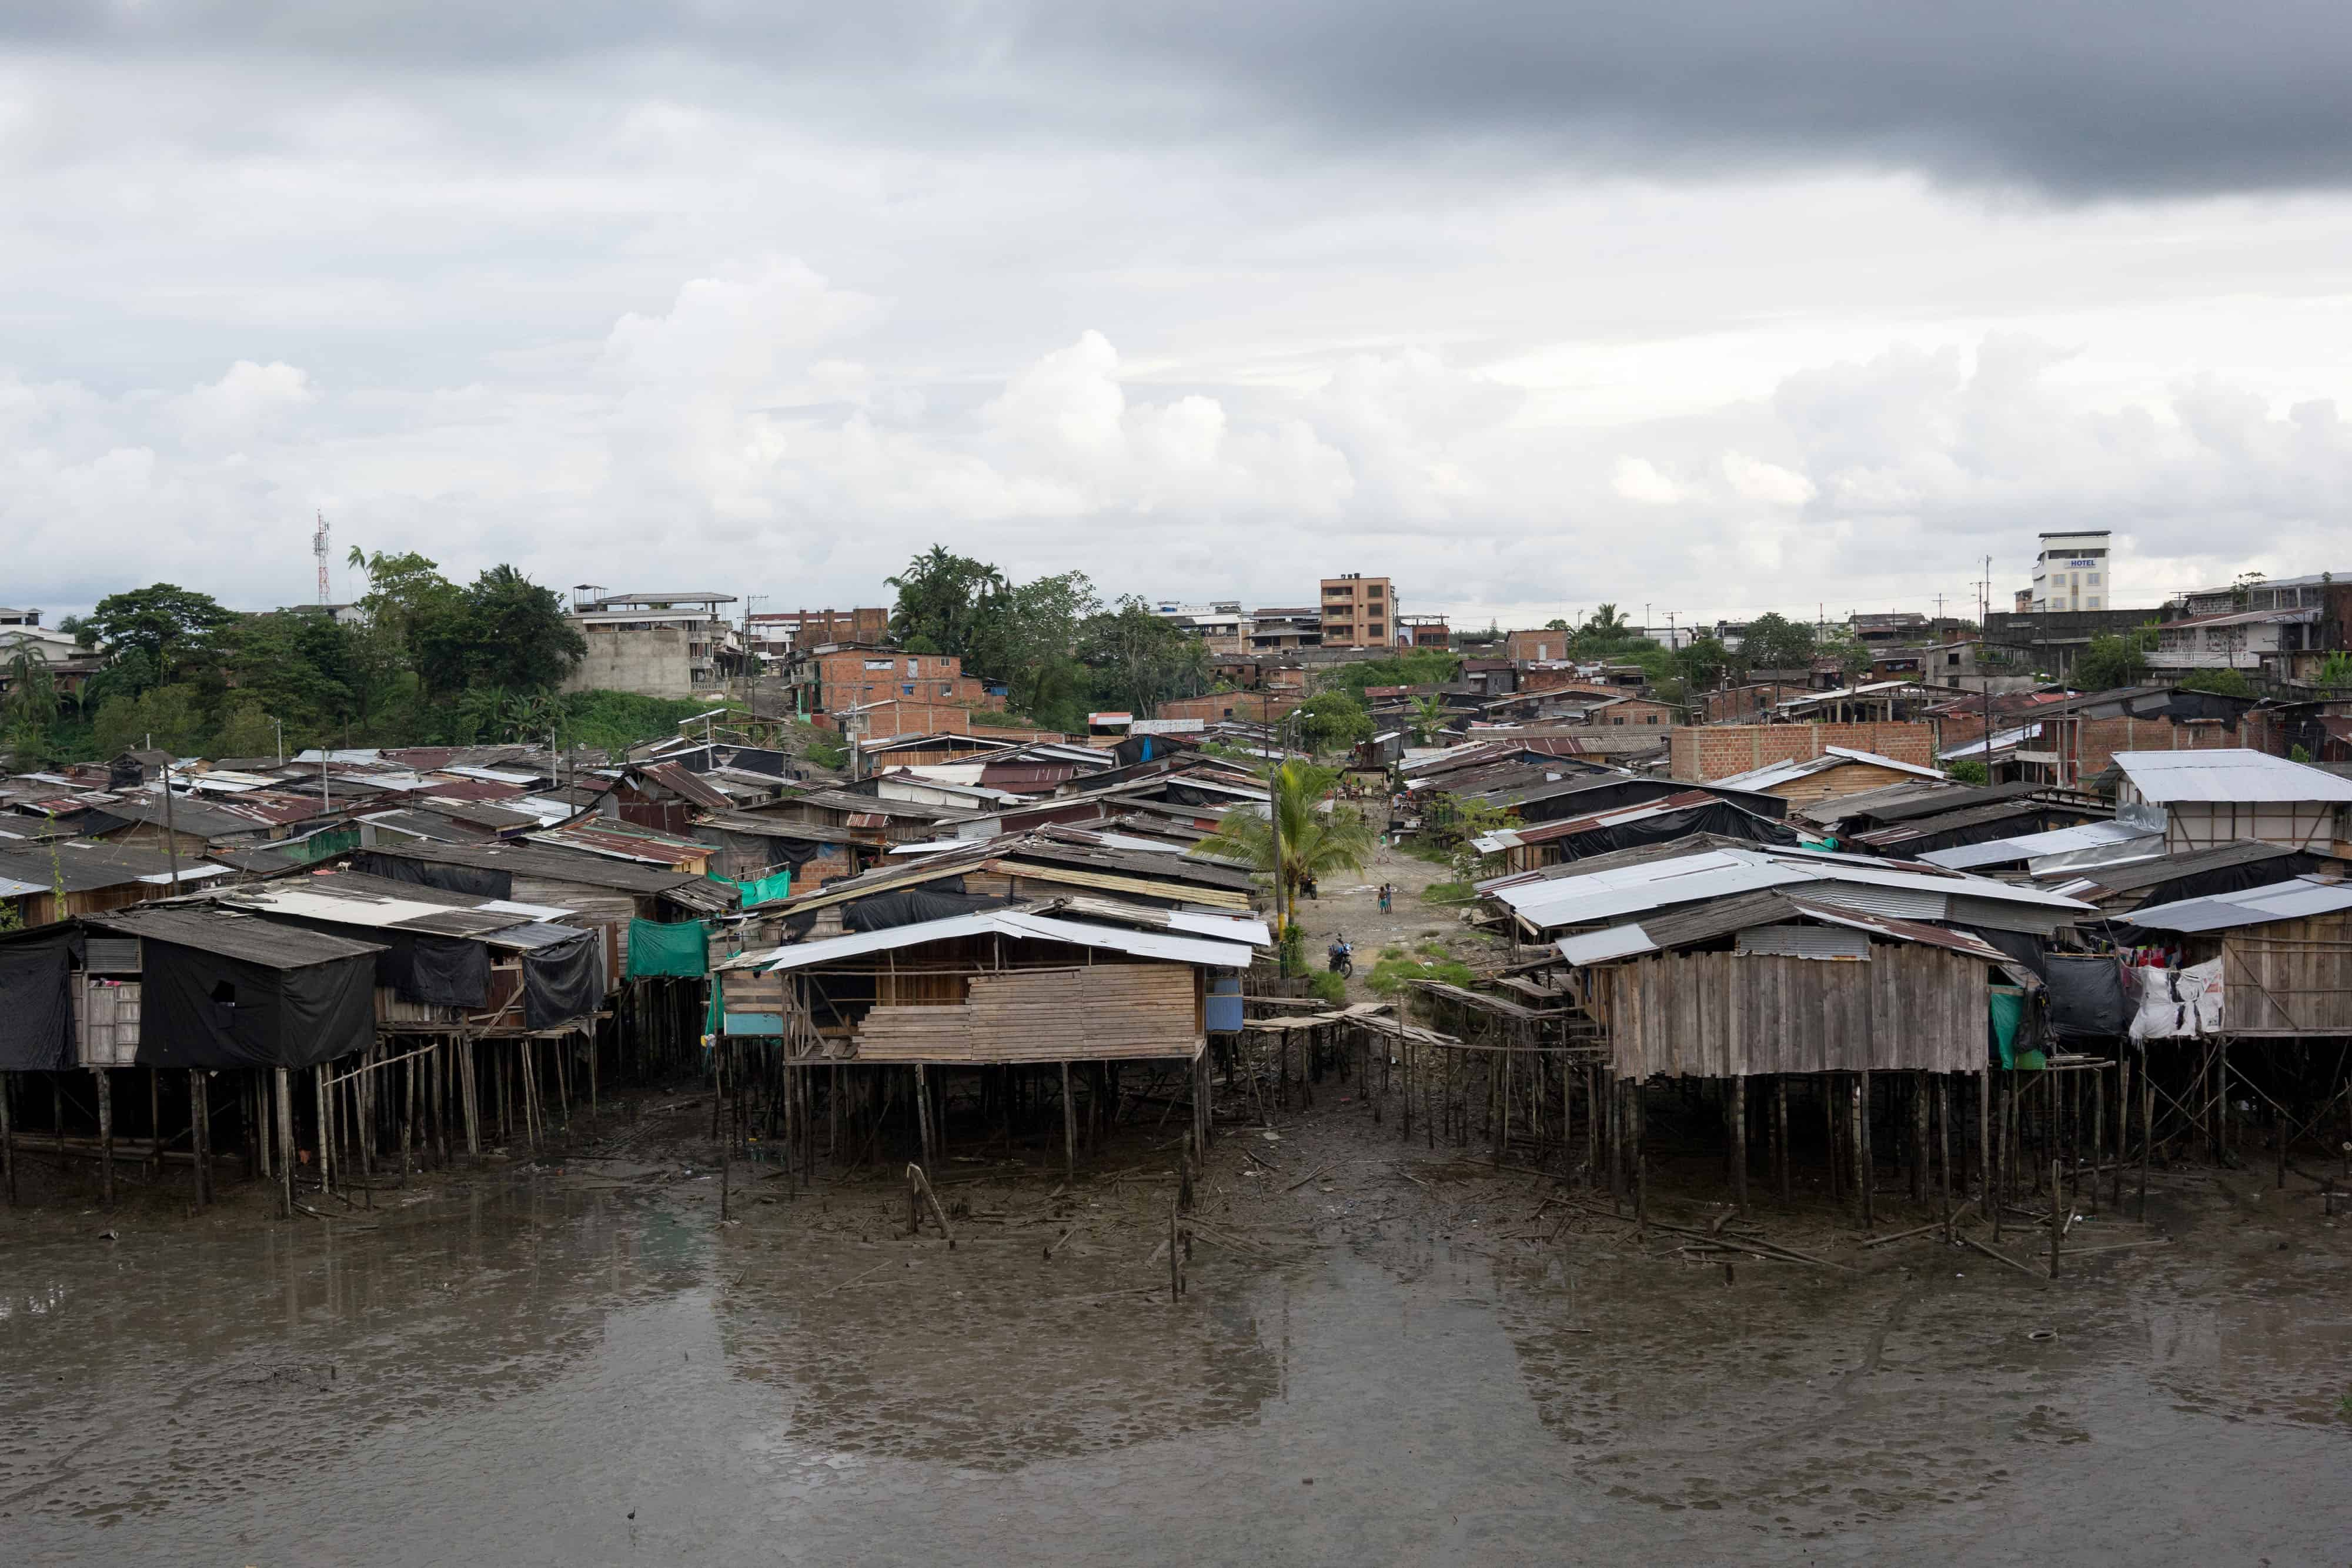 Wooden stilt houses in Buenaventura, Colombia